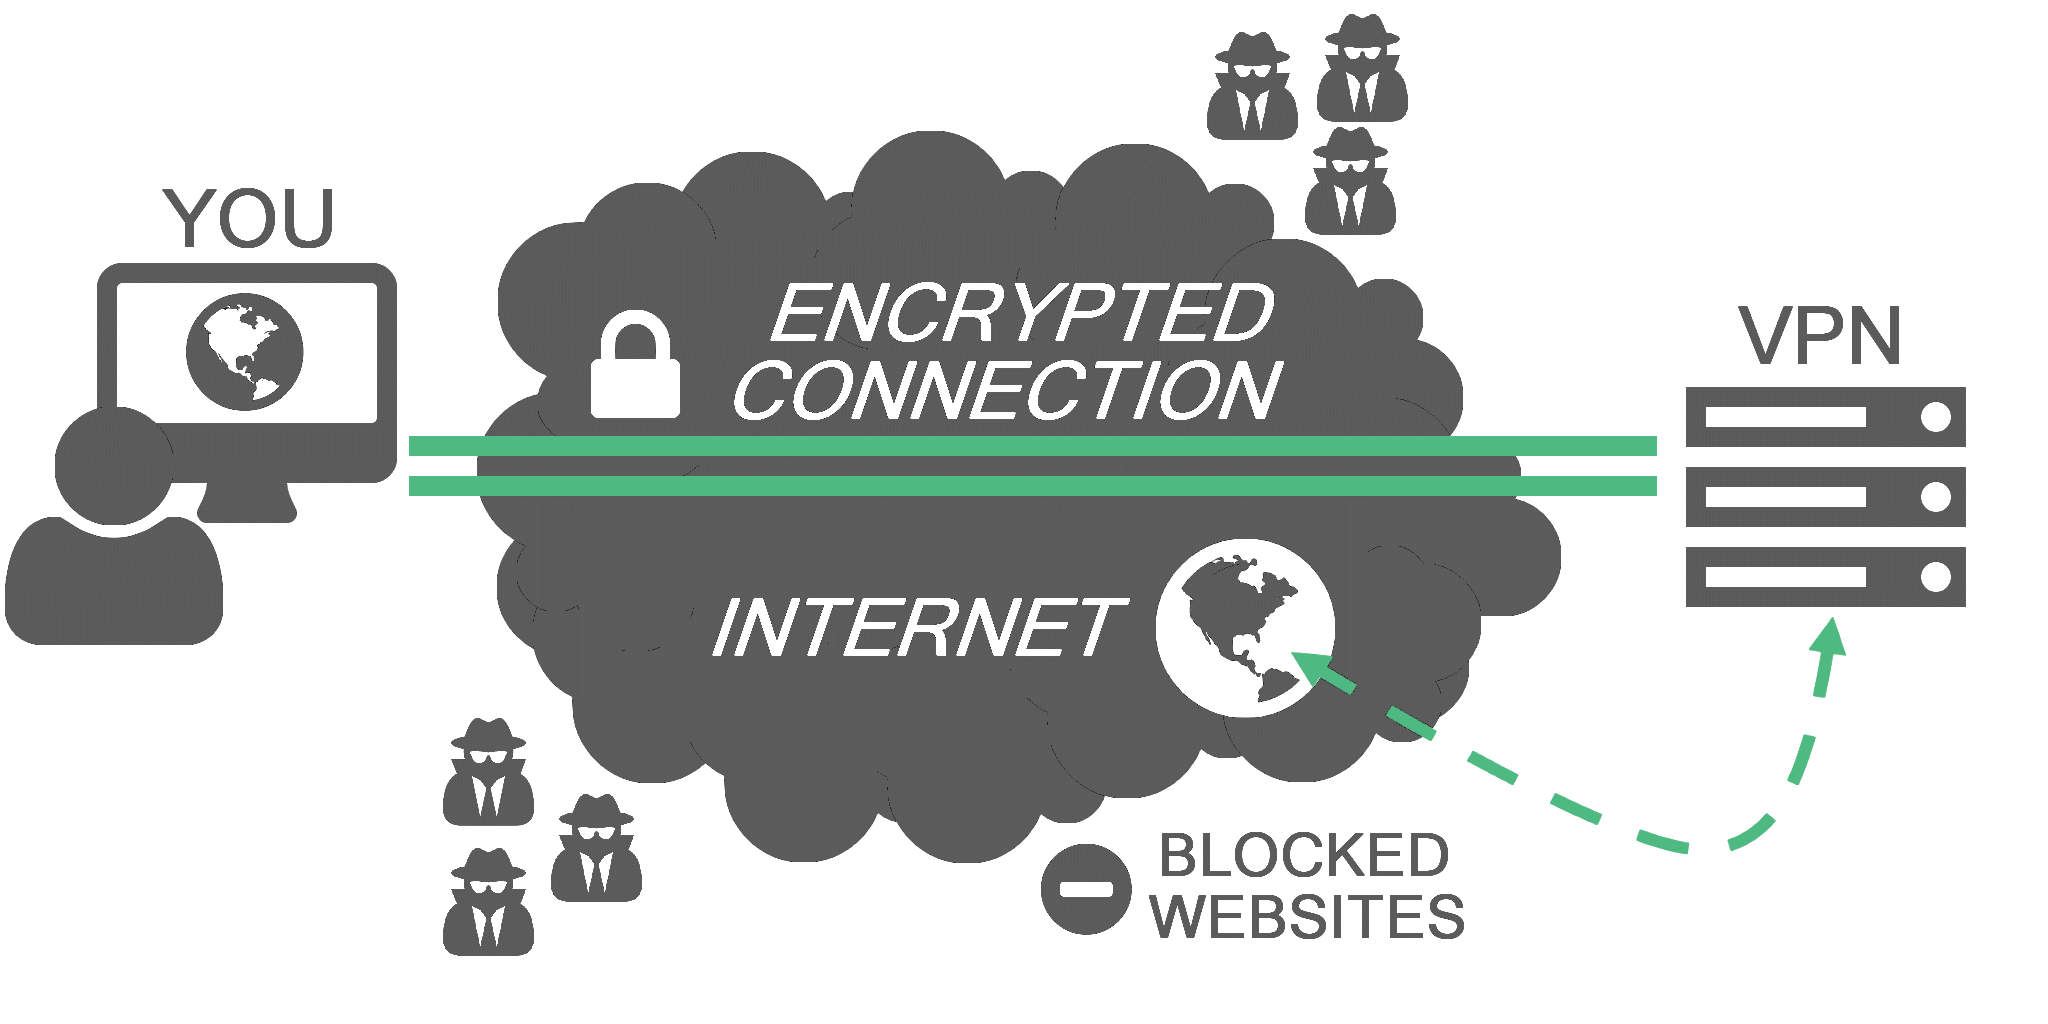 A VPN is an efficient and simple way to browse anonymously, and access websites and games that may not be available by default in your country/area.